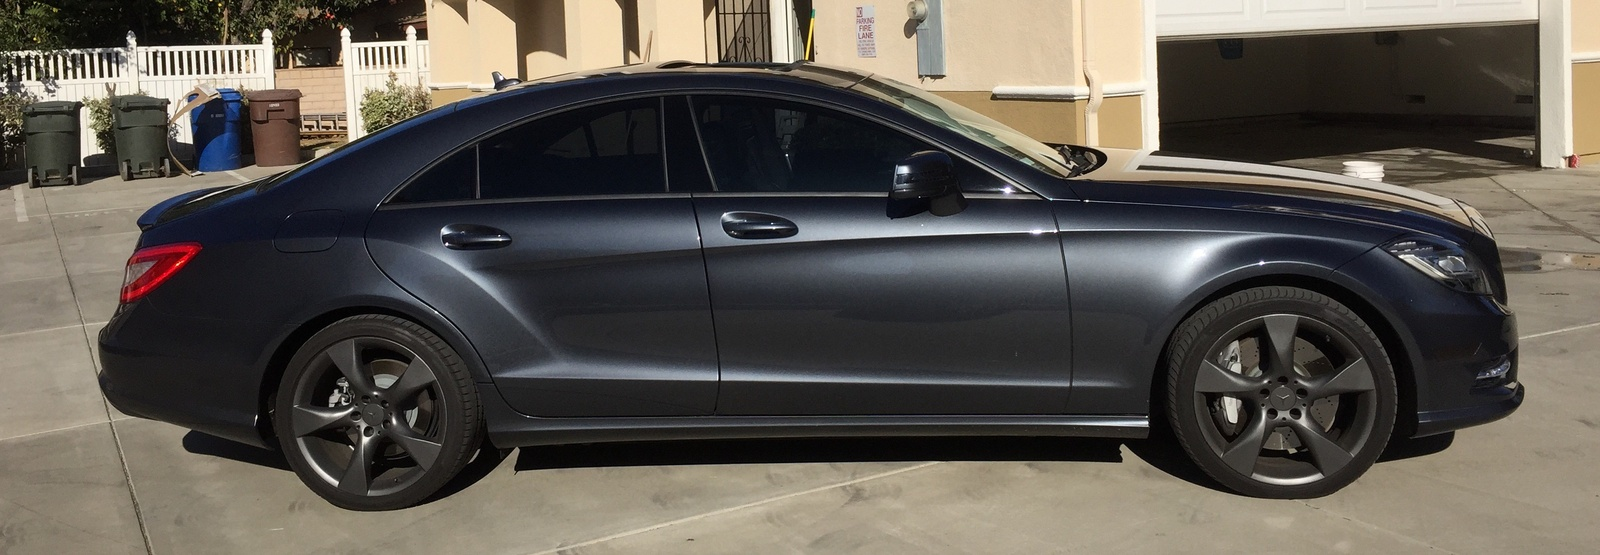 Picture of 2014 Mercedes-Benz CLS-Class CLS550